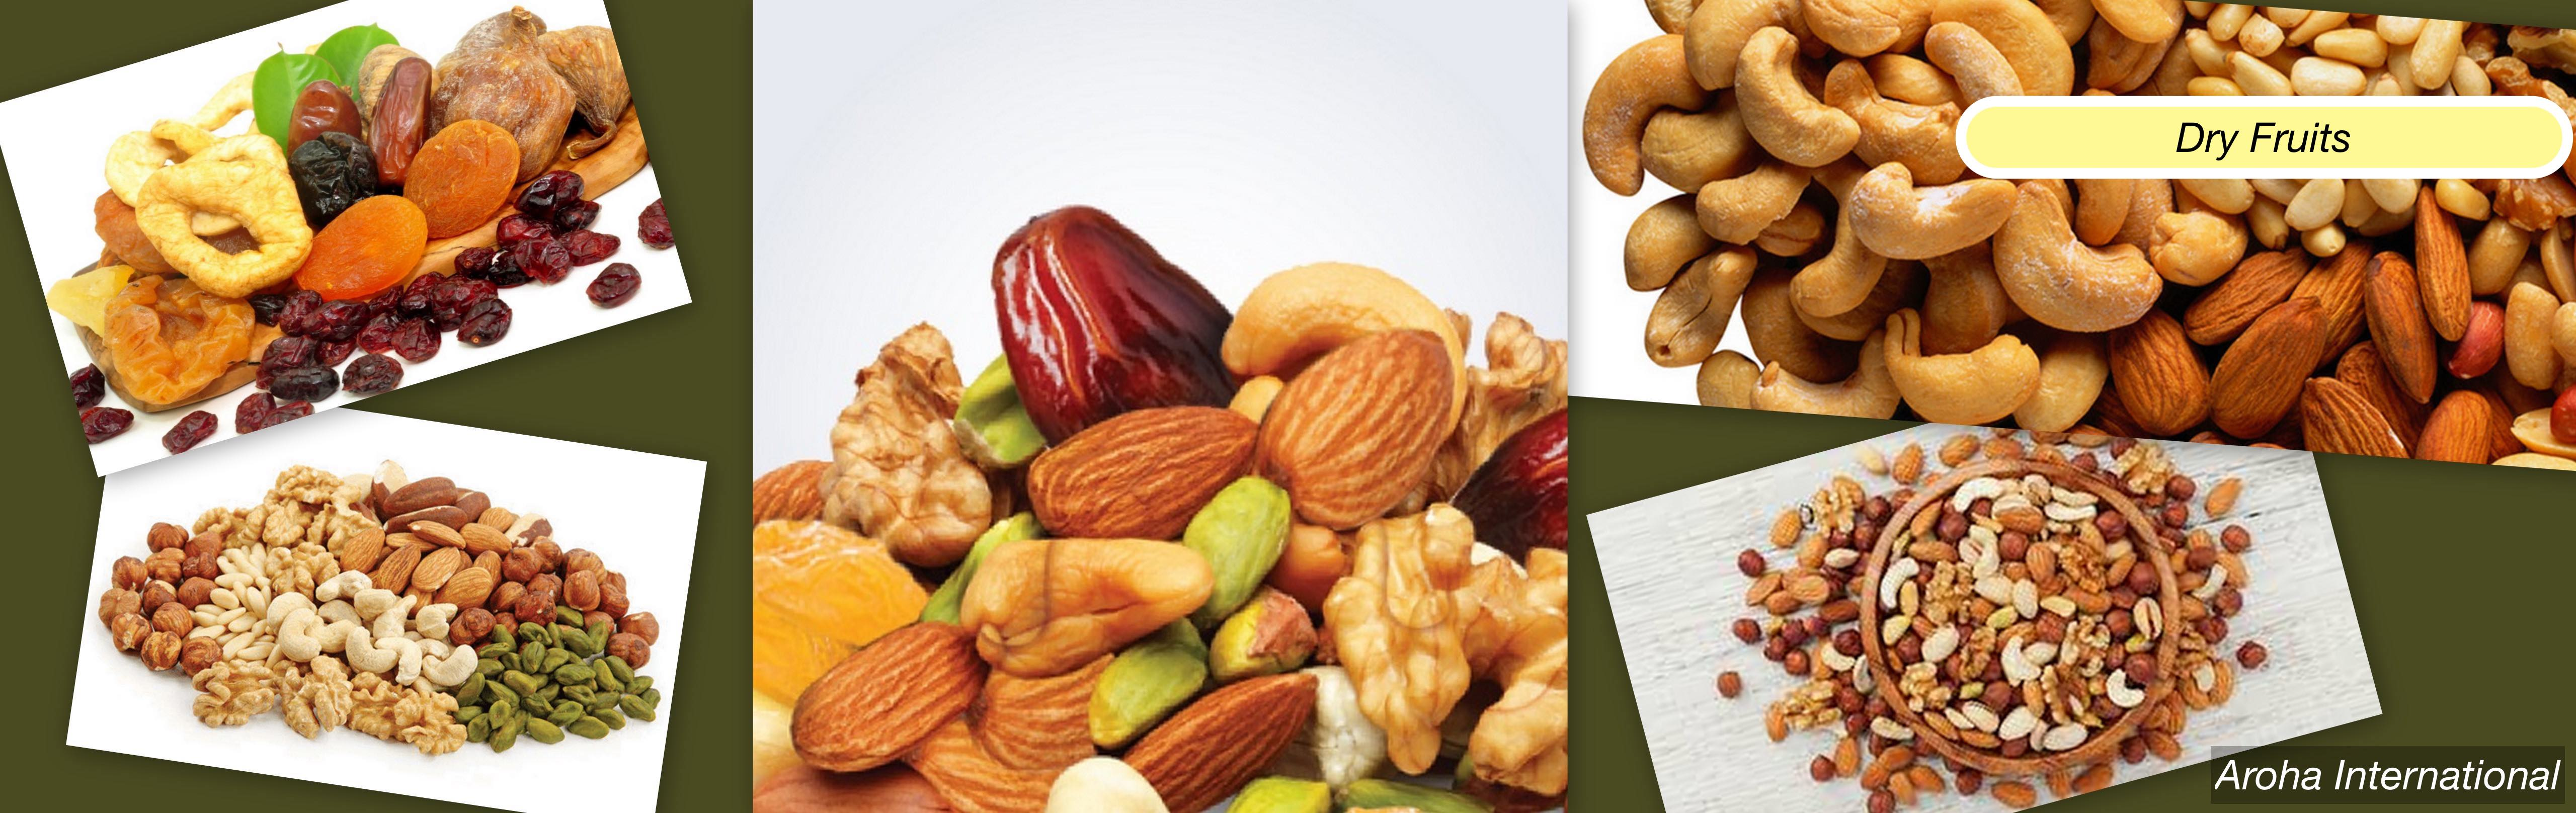 Indian Mixed Dry Fruits | Wholesale Supplier & Exporter | Aroha